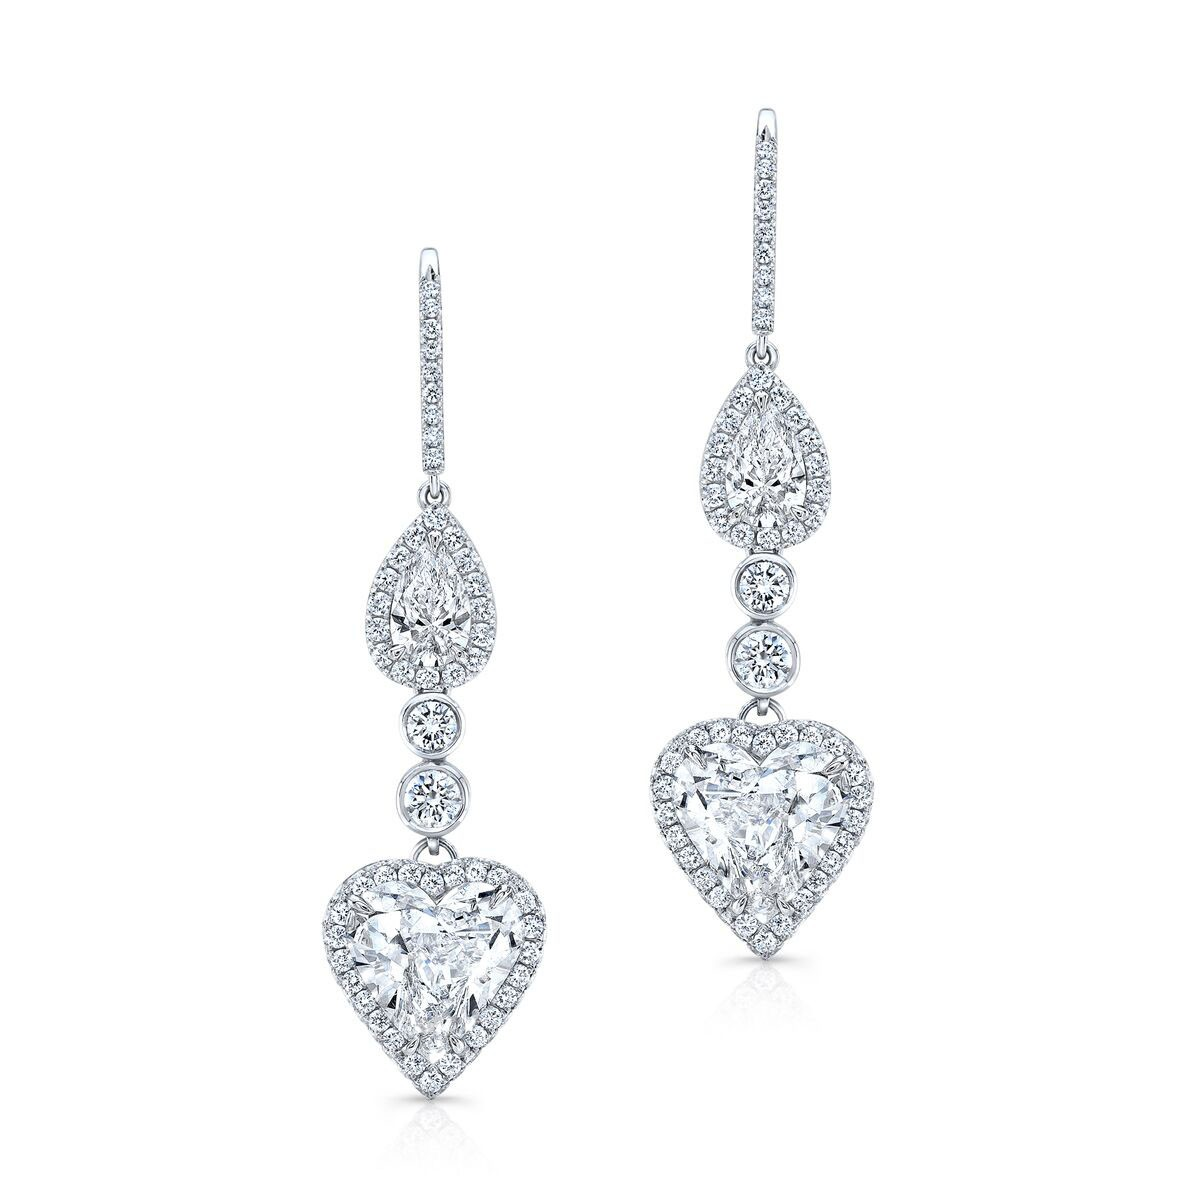 katz stud martin earrings collection designer the for bridal diamond drop brides